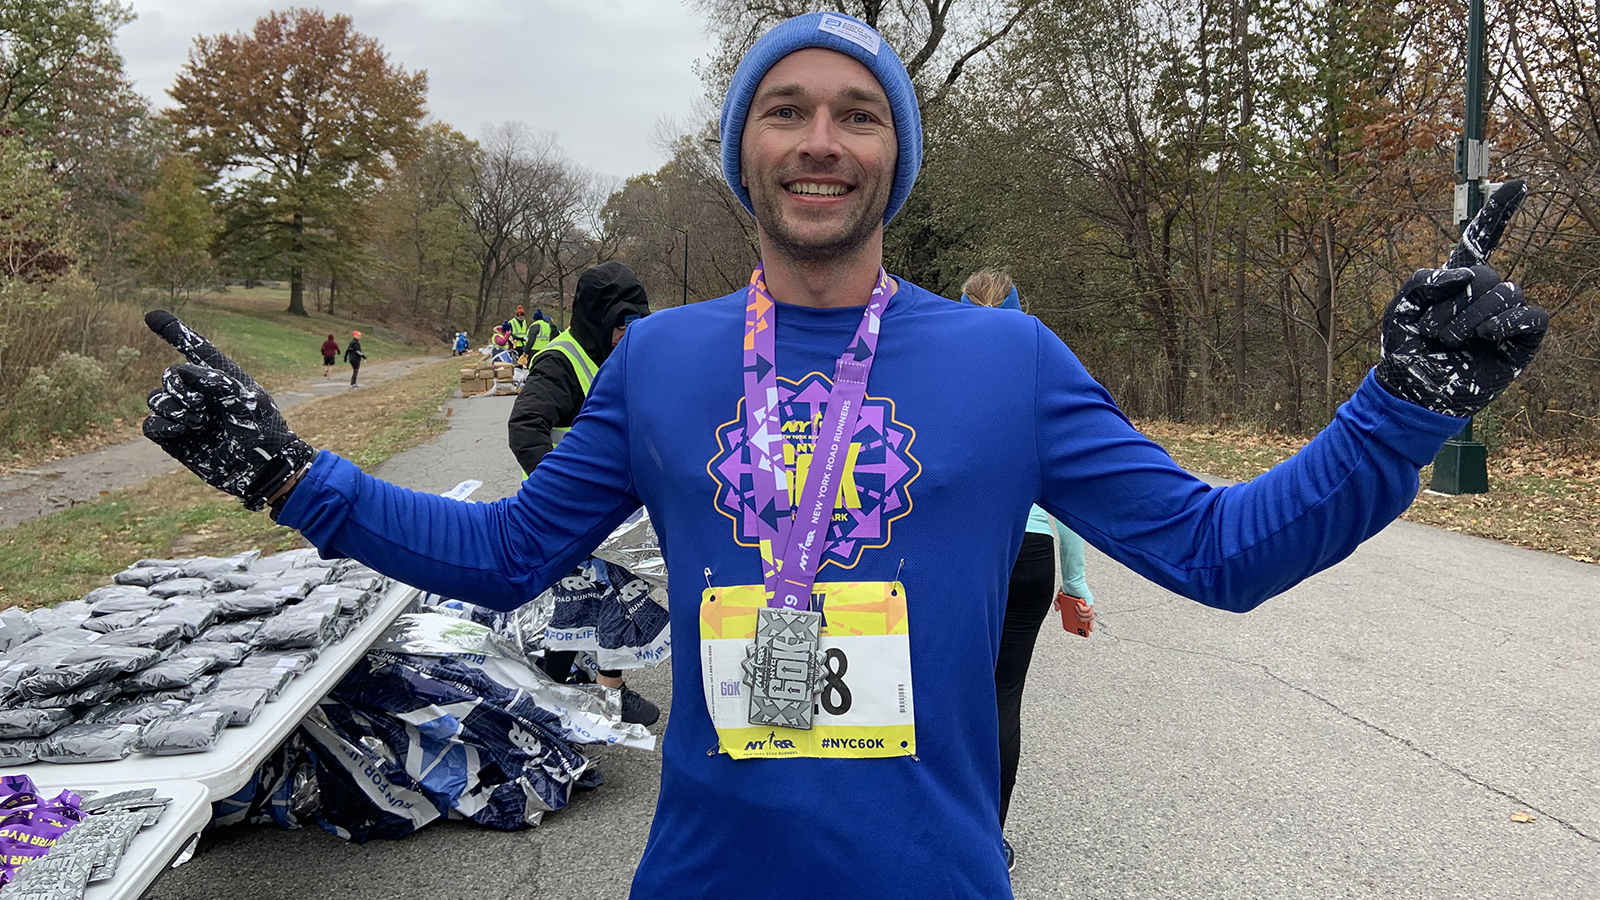 A runner posing with his medal after finishing the NYRR 60K